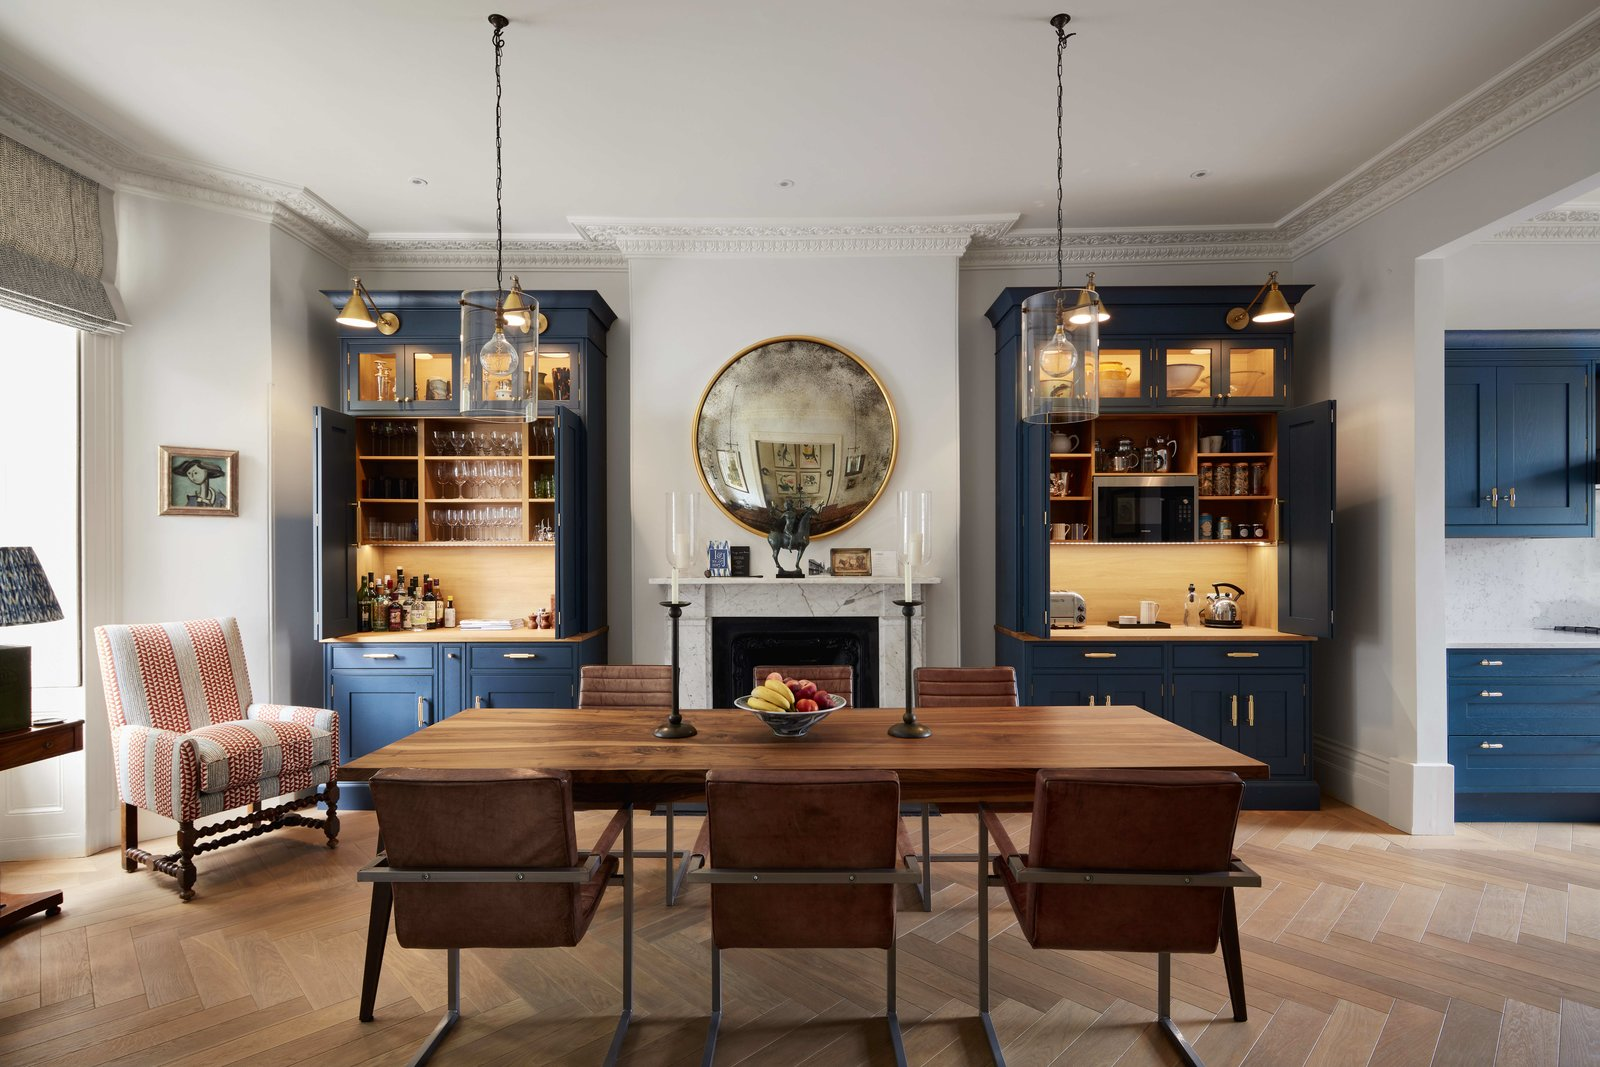 Dining, Chair, Table, Pendant, Wall, Ceiling, Medium Hardwood, and Standard Layout Dining Room and Kitchen - Entrance  Best Dining Medium Hardwood Standard Layout Photos from Art Collectors Home